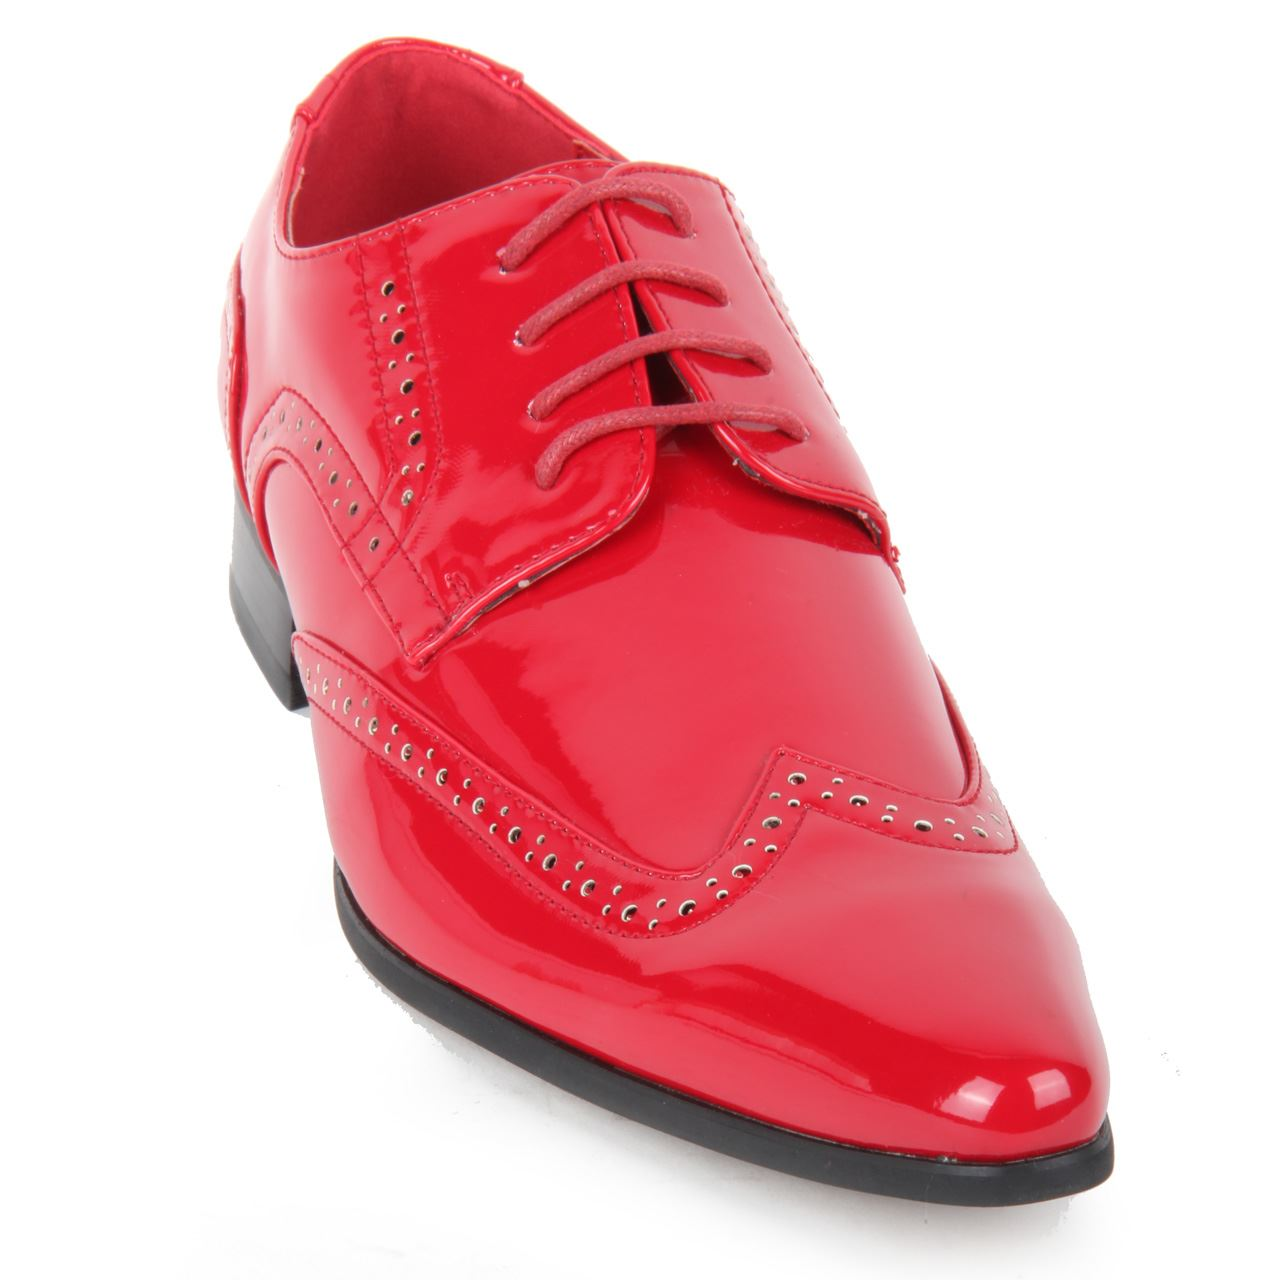 Mens-Smart-Lace-Up-Pointed-Toe-Brogue-Formal-Patent-Leather-Lined-Shoes thumbnail 8